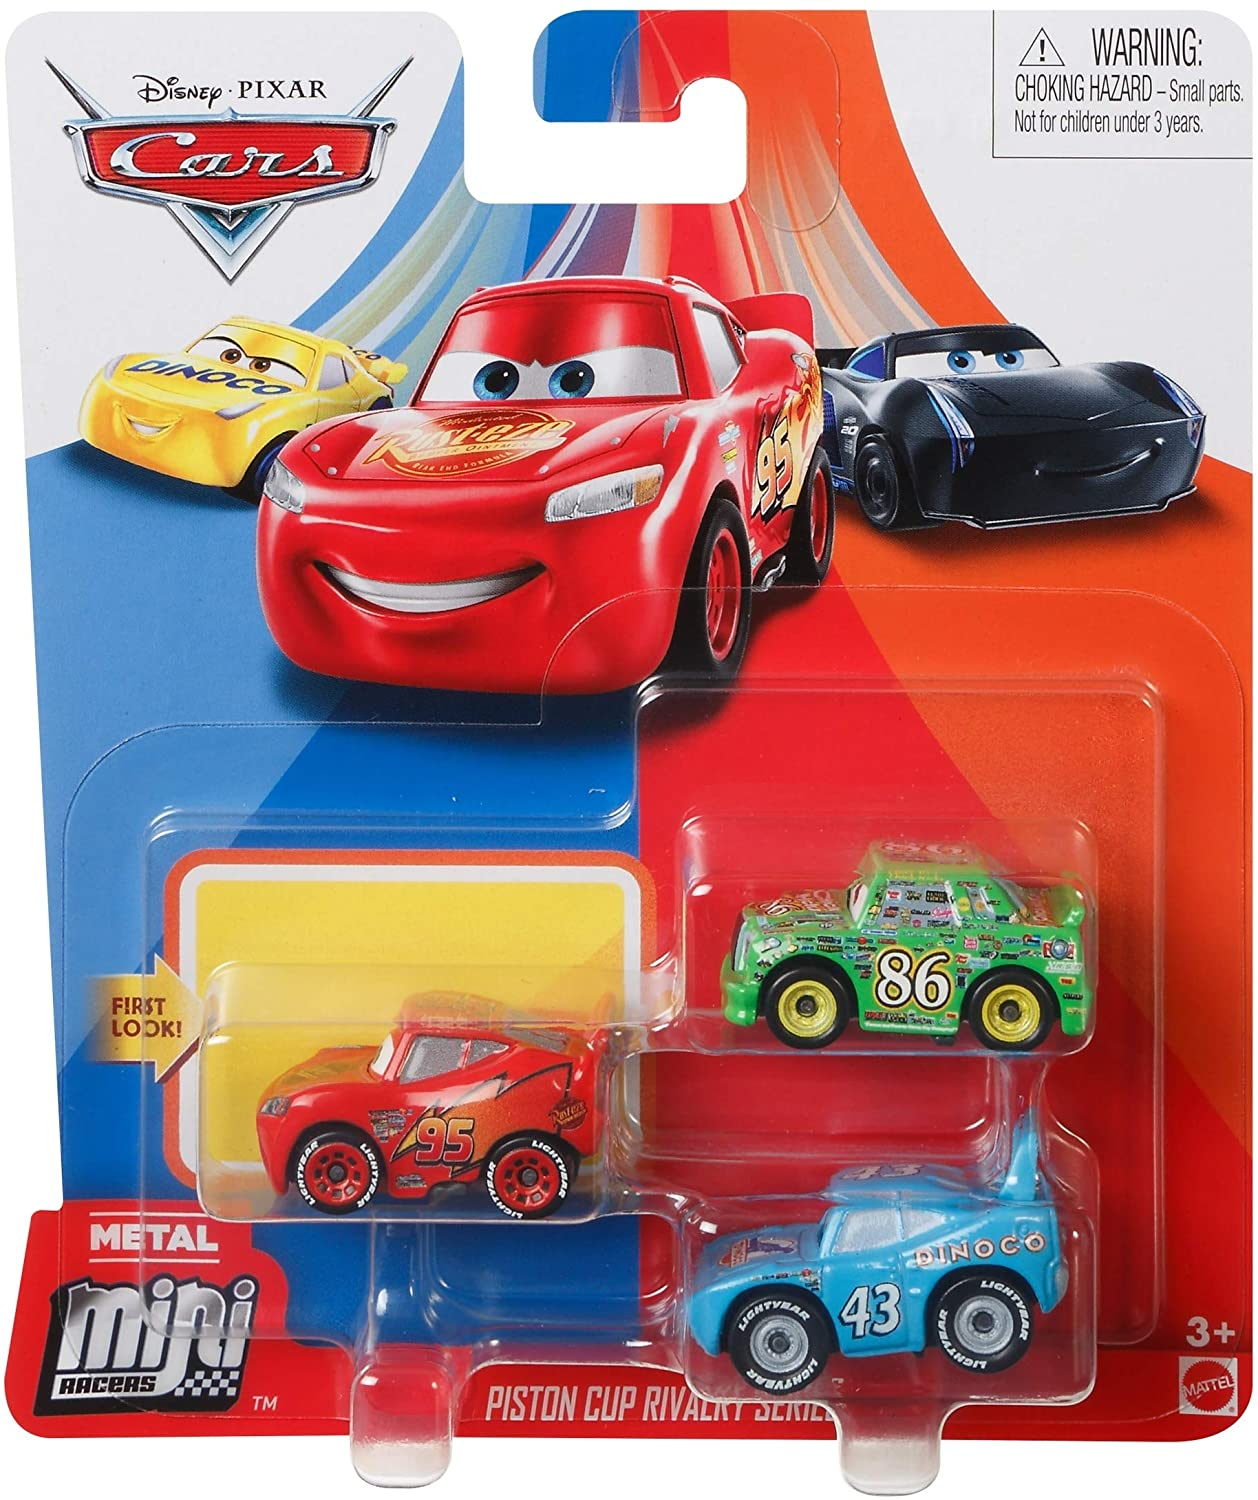 Disney Pixar Cars - Mini Racers 3 Pack - Mcqueen, Chick Hicks and The King: Amazon.es: Juguetes y juegos